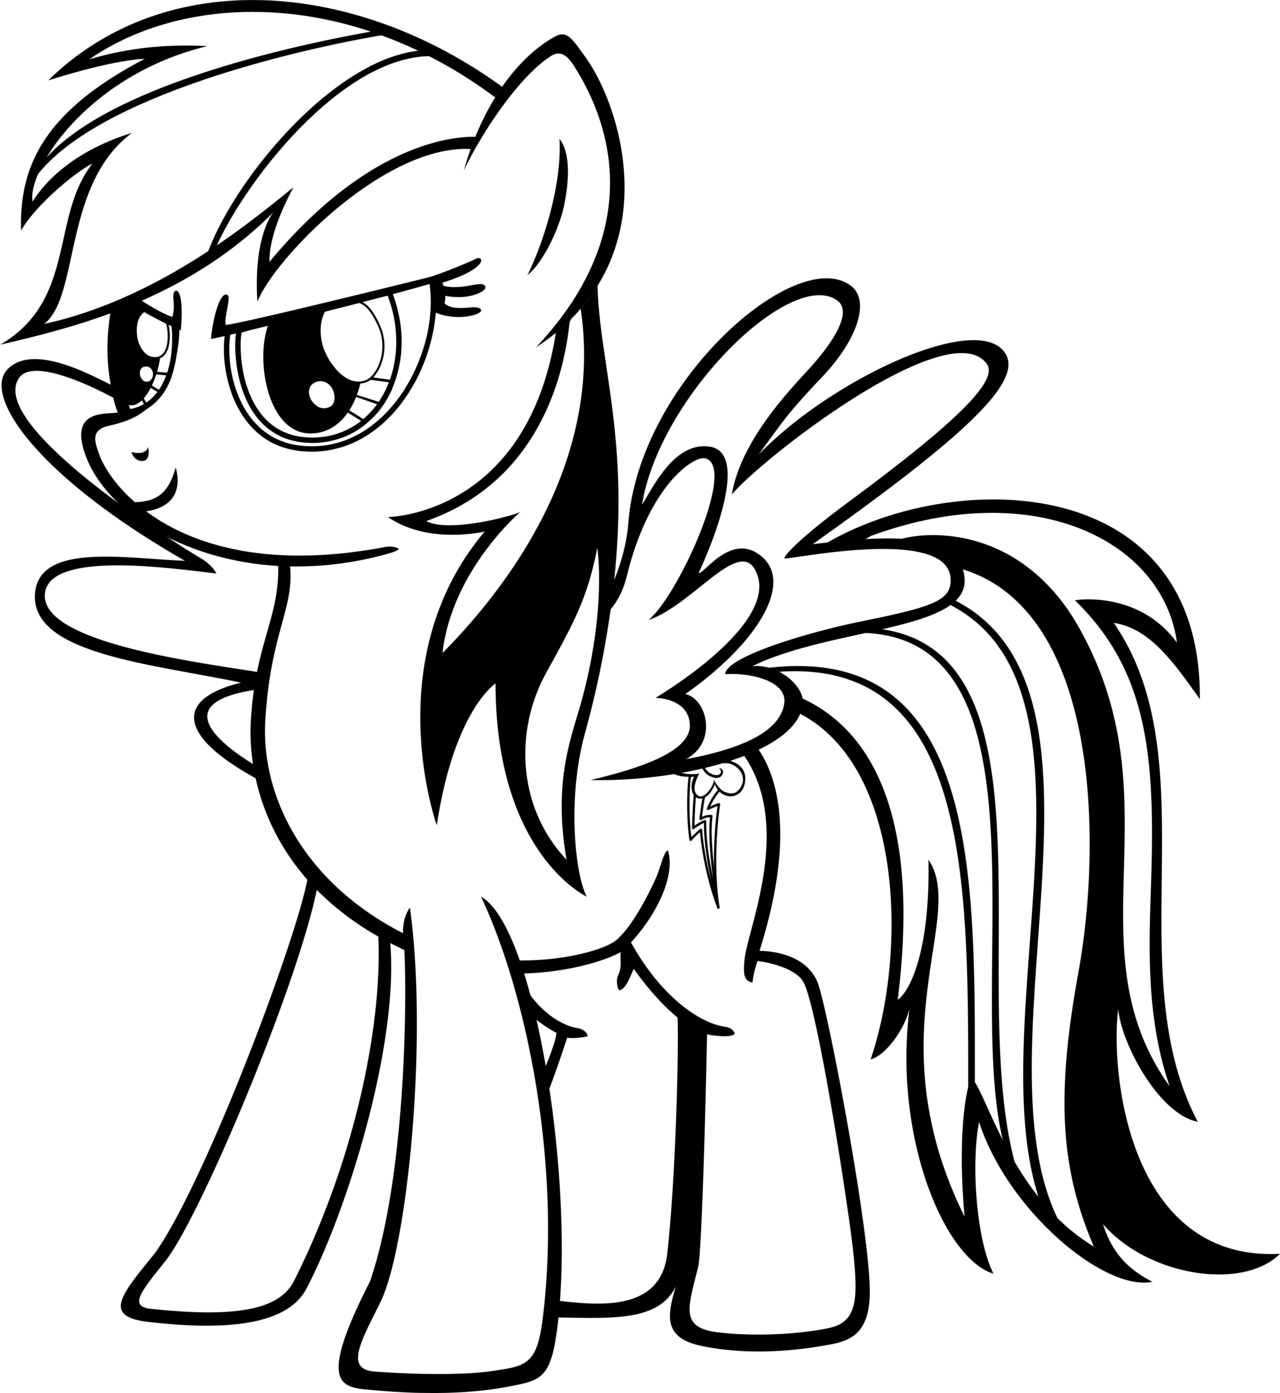 Rainbow dash coloring pages best coloring pages for kids for Free printable cartoon coloring pages